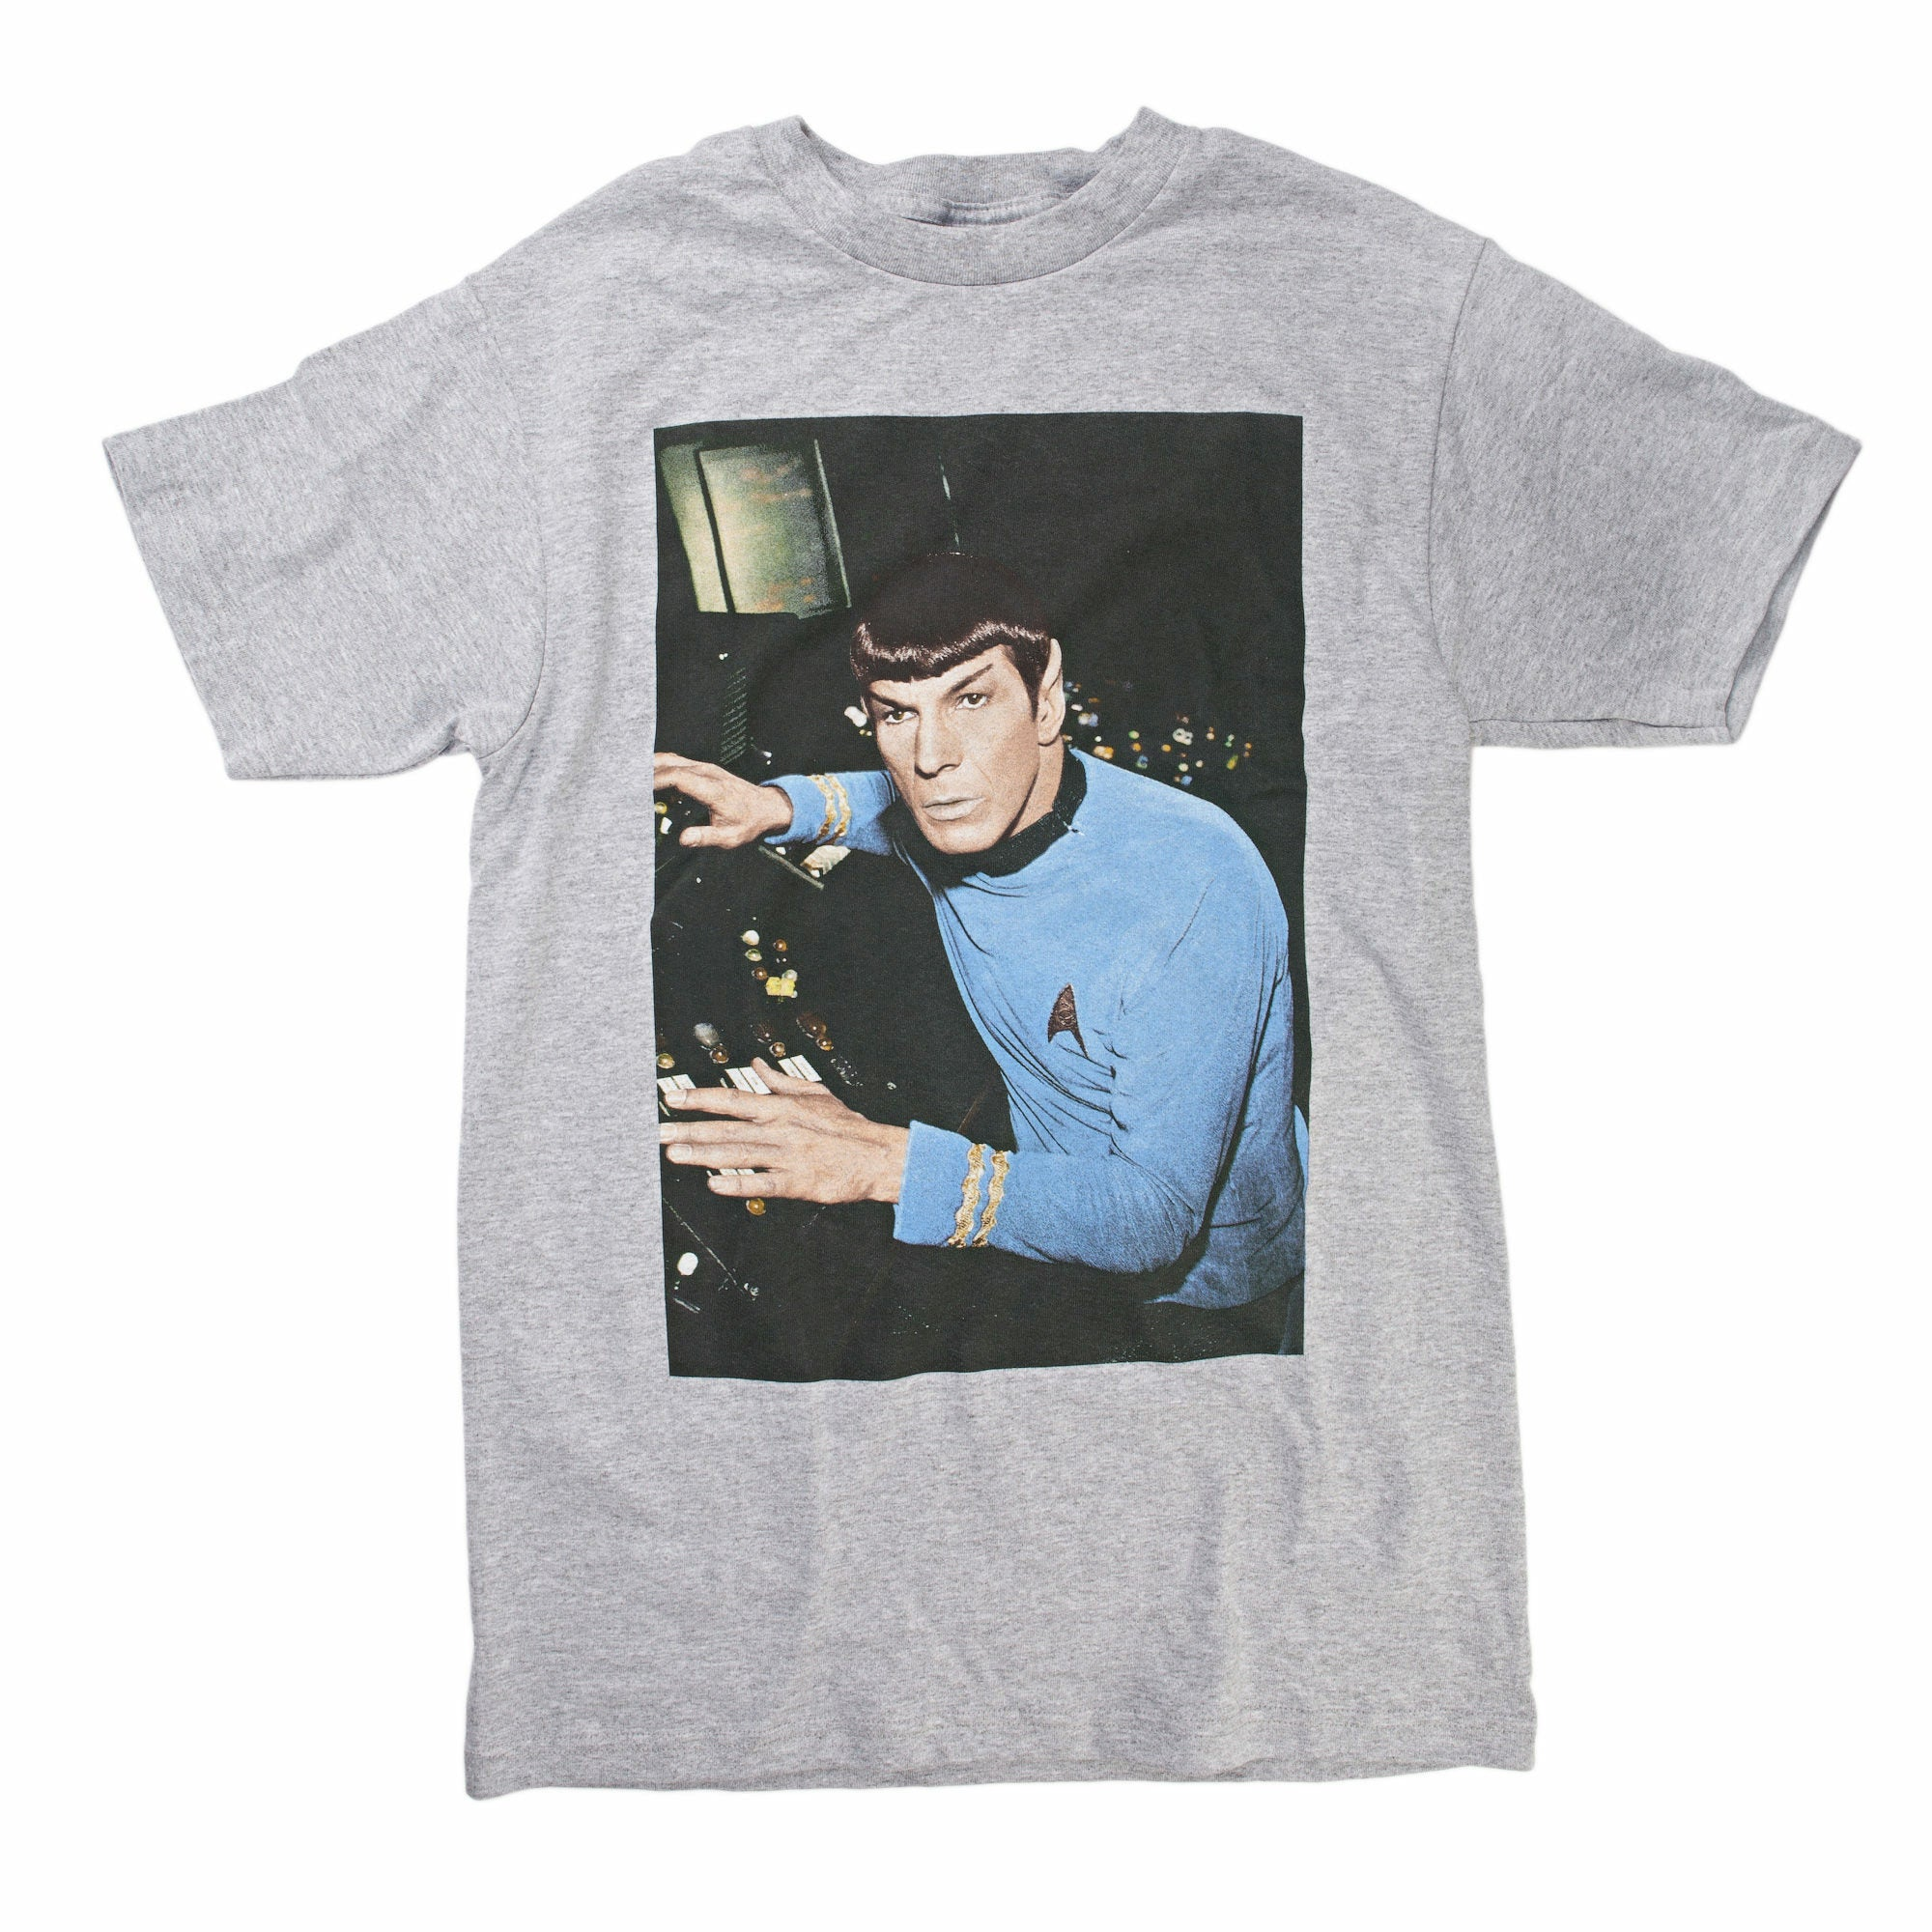 Star Trek Leonard Nimoy as Spock Mens Grey T-Shirt